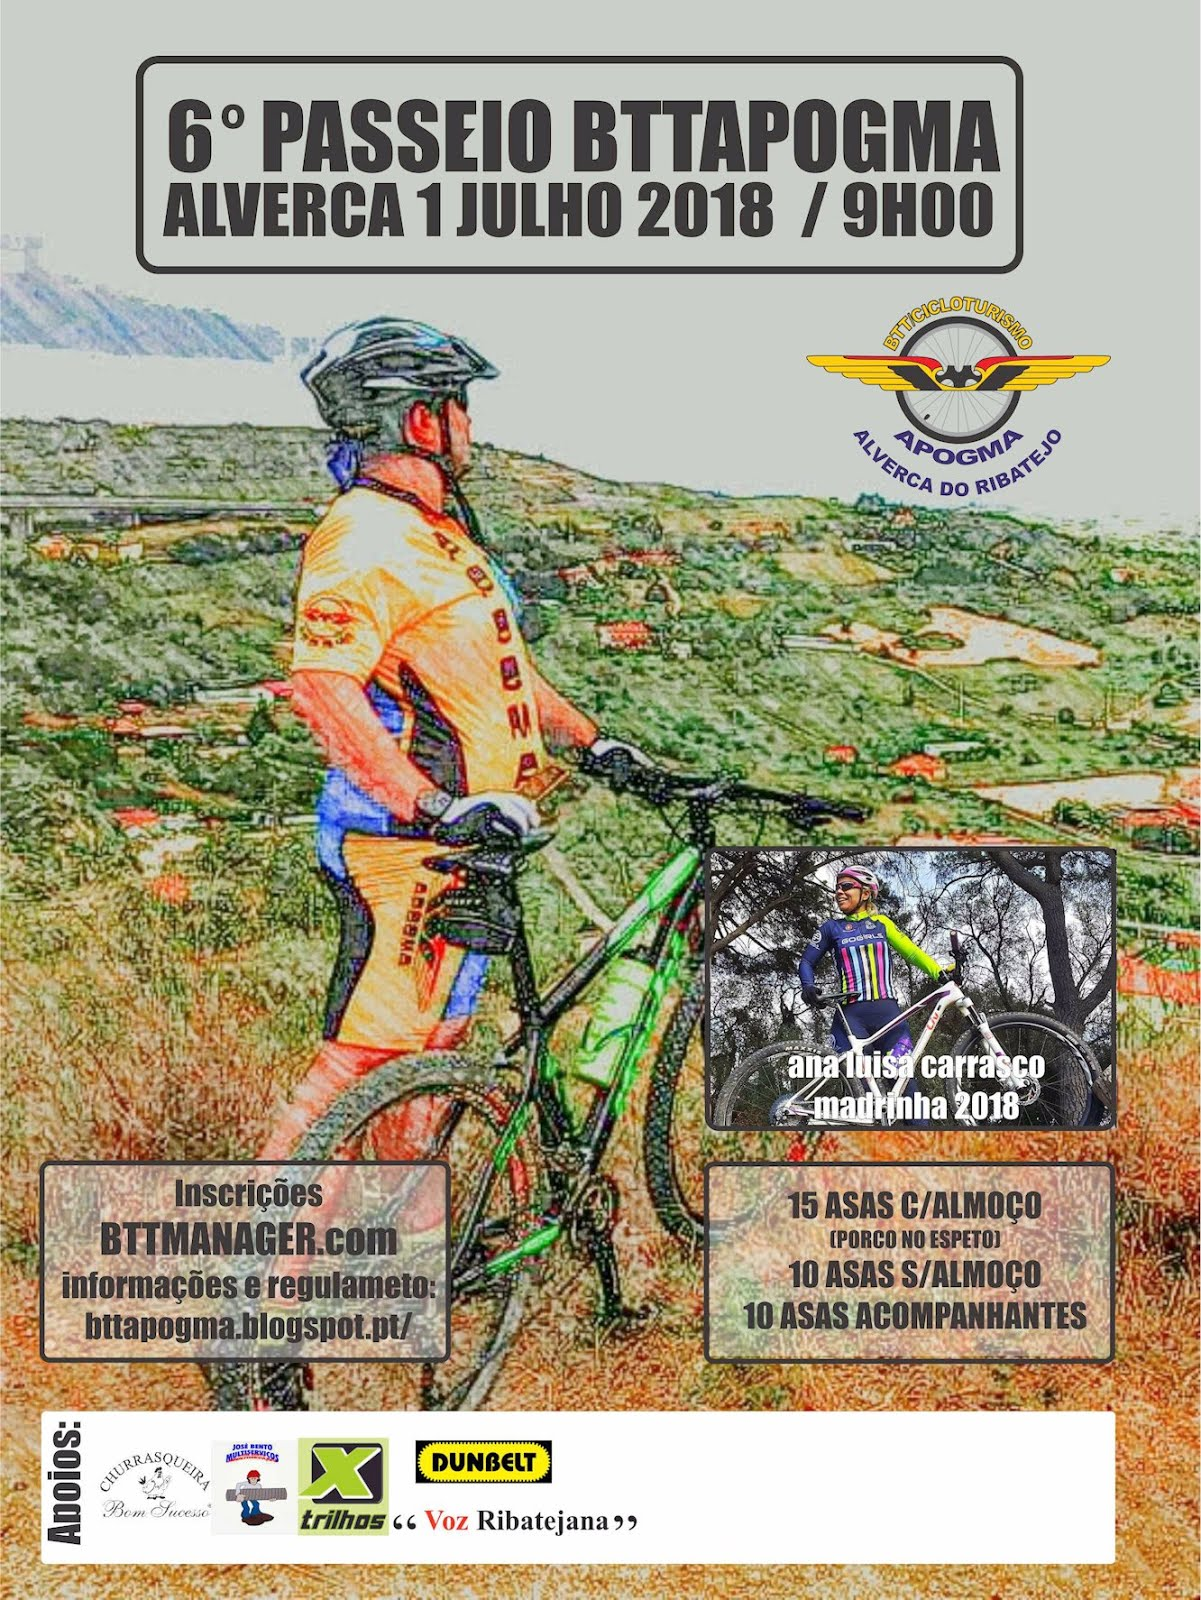 01JUL * ALVERCA DO RIBATEJO